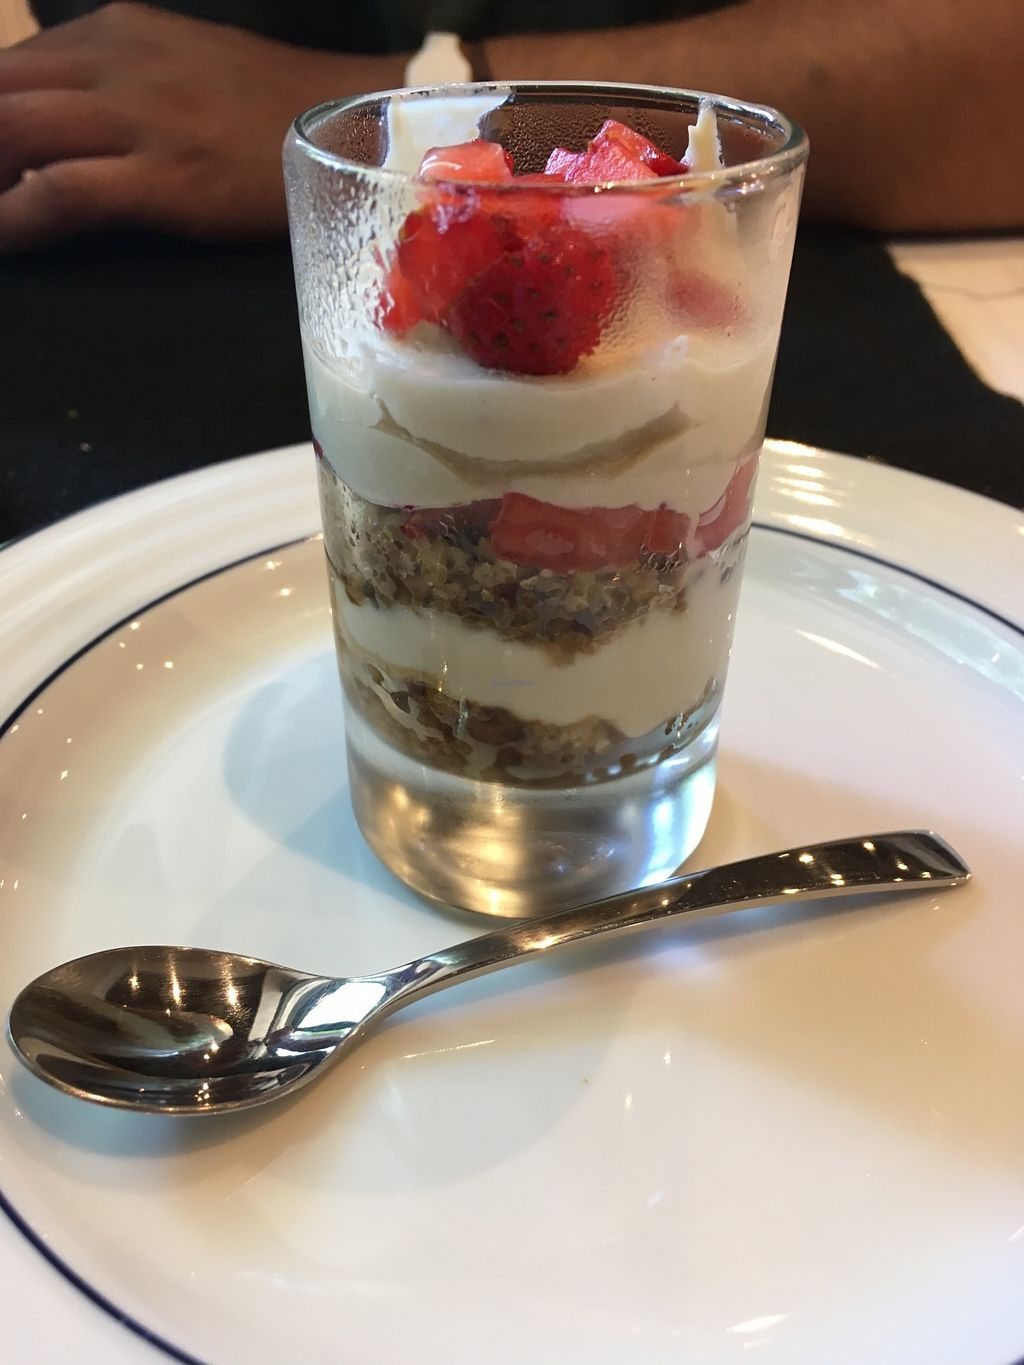 """Photo of Rawdical Vegan Kitchen  by <a href=""""/members/profile/peas-full"""">peas-full</a> <br/>raw tiramisu <br/> December 29, 2017  - <a href='/contact/abuse/image/108126/340263'>Report</a>"""